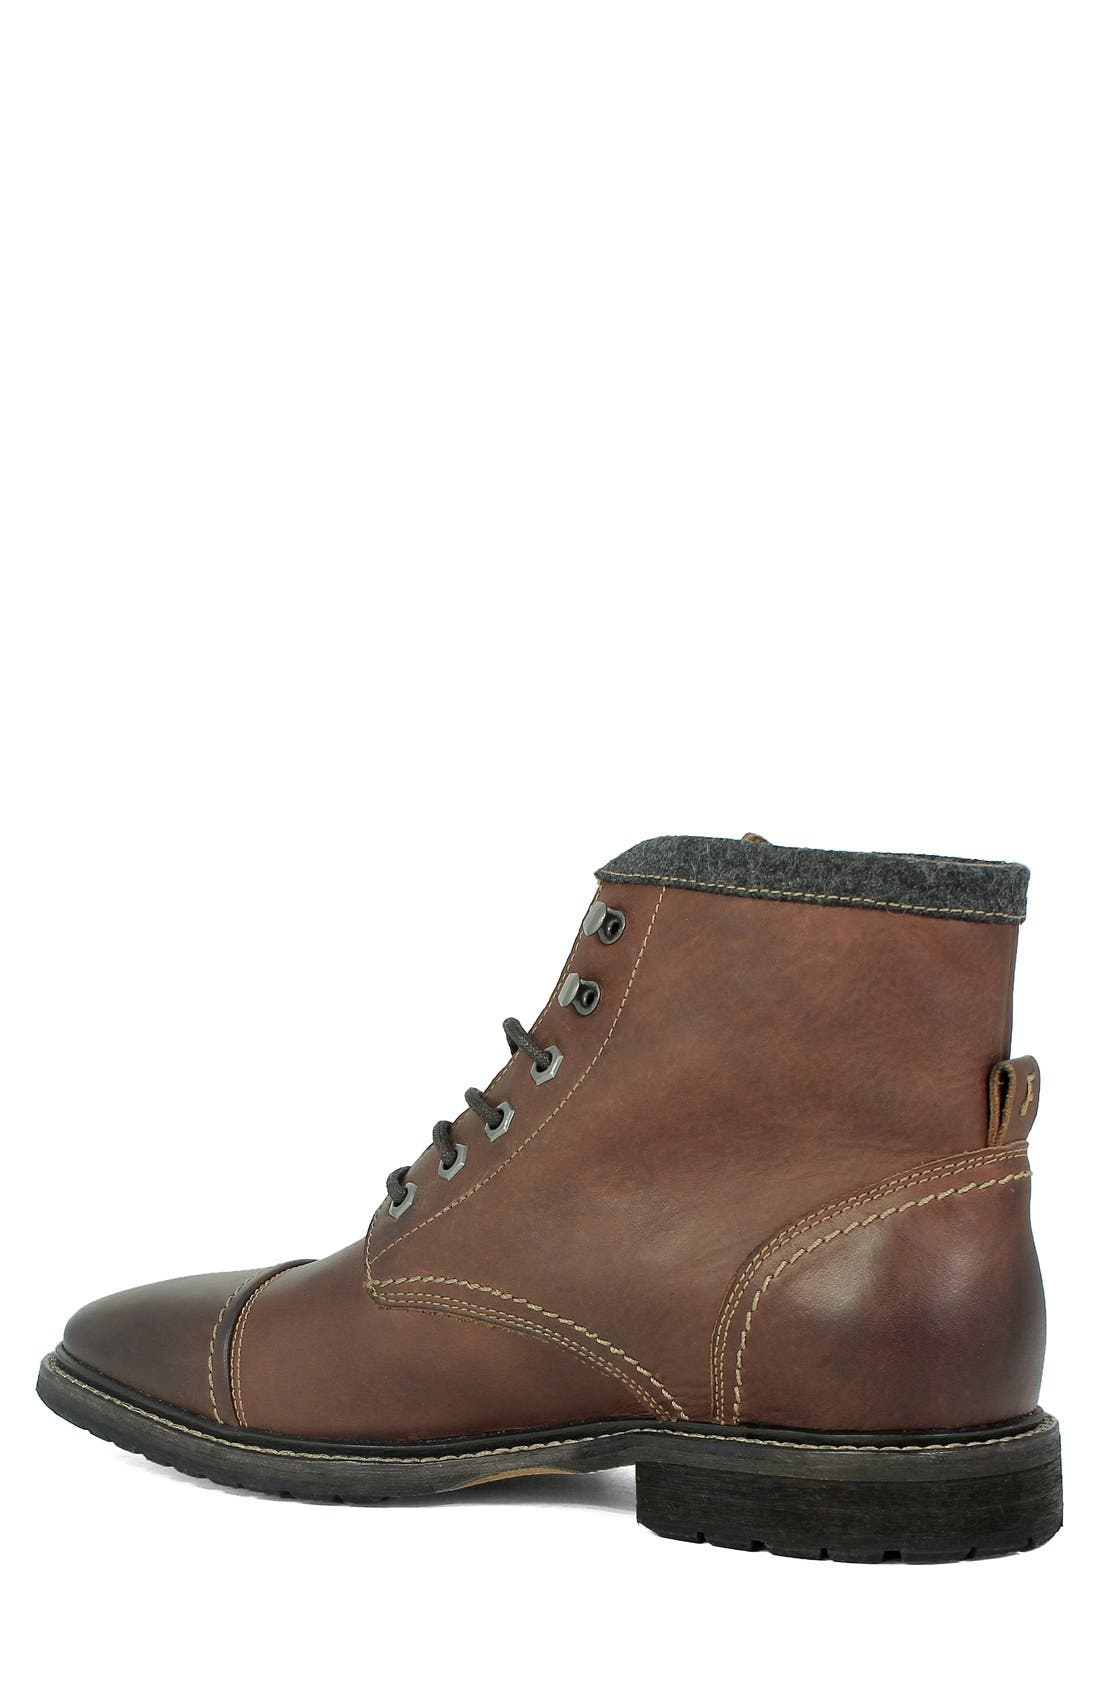 'Indie' Cap Toe Boot,                             Alternate thumbnail 2, color,                             Chestnut Leather